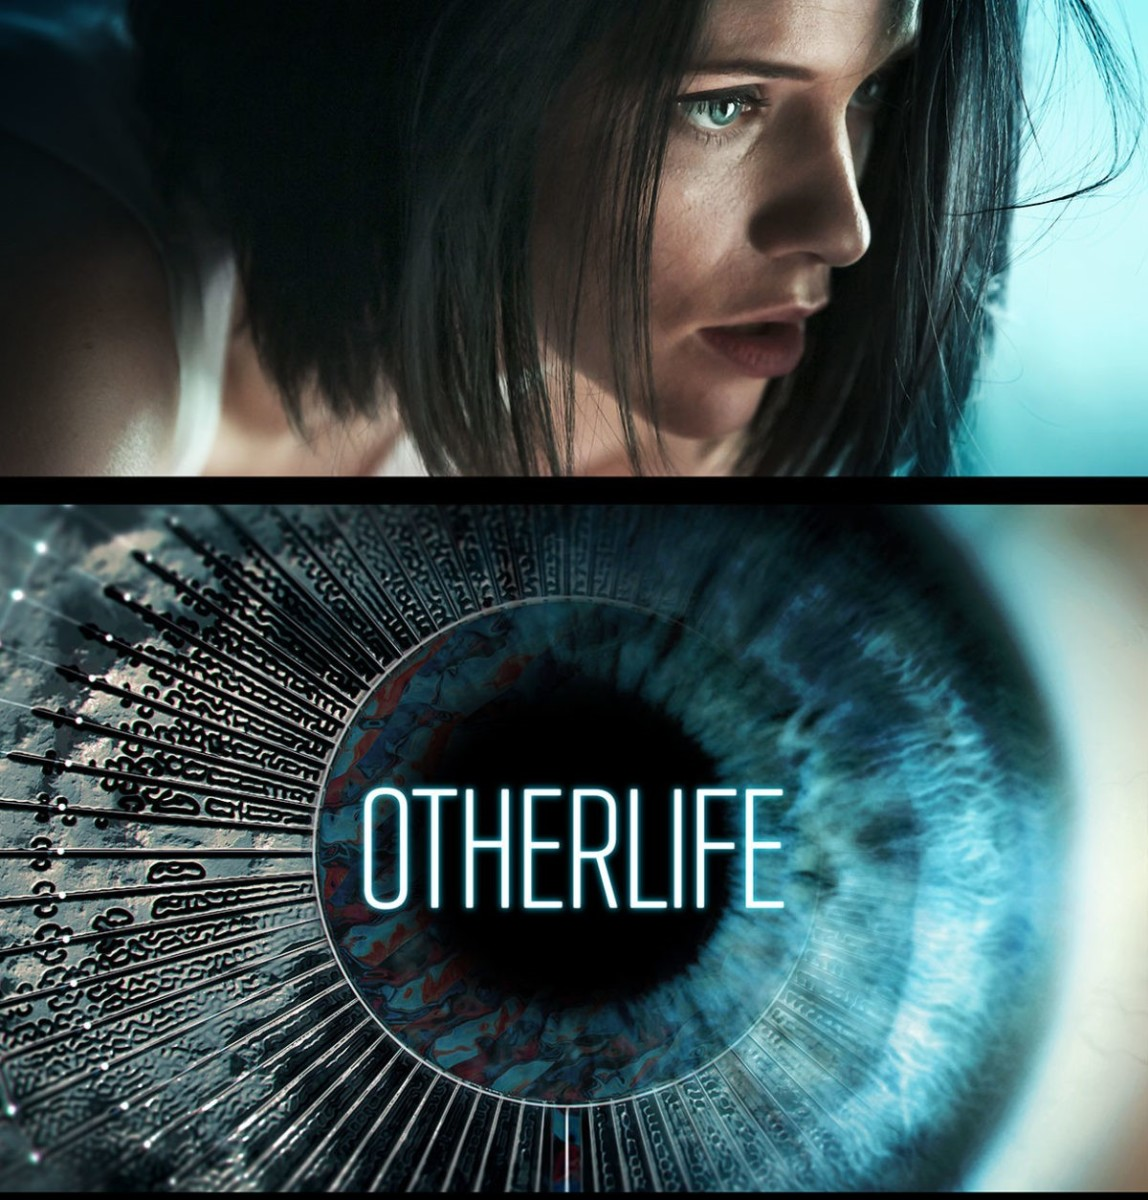 OtherLife 2017 Review and Explanation